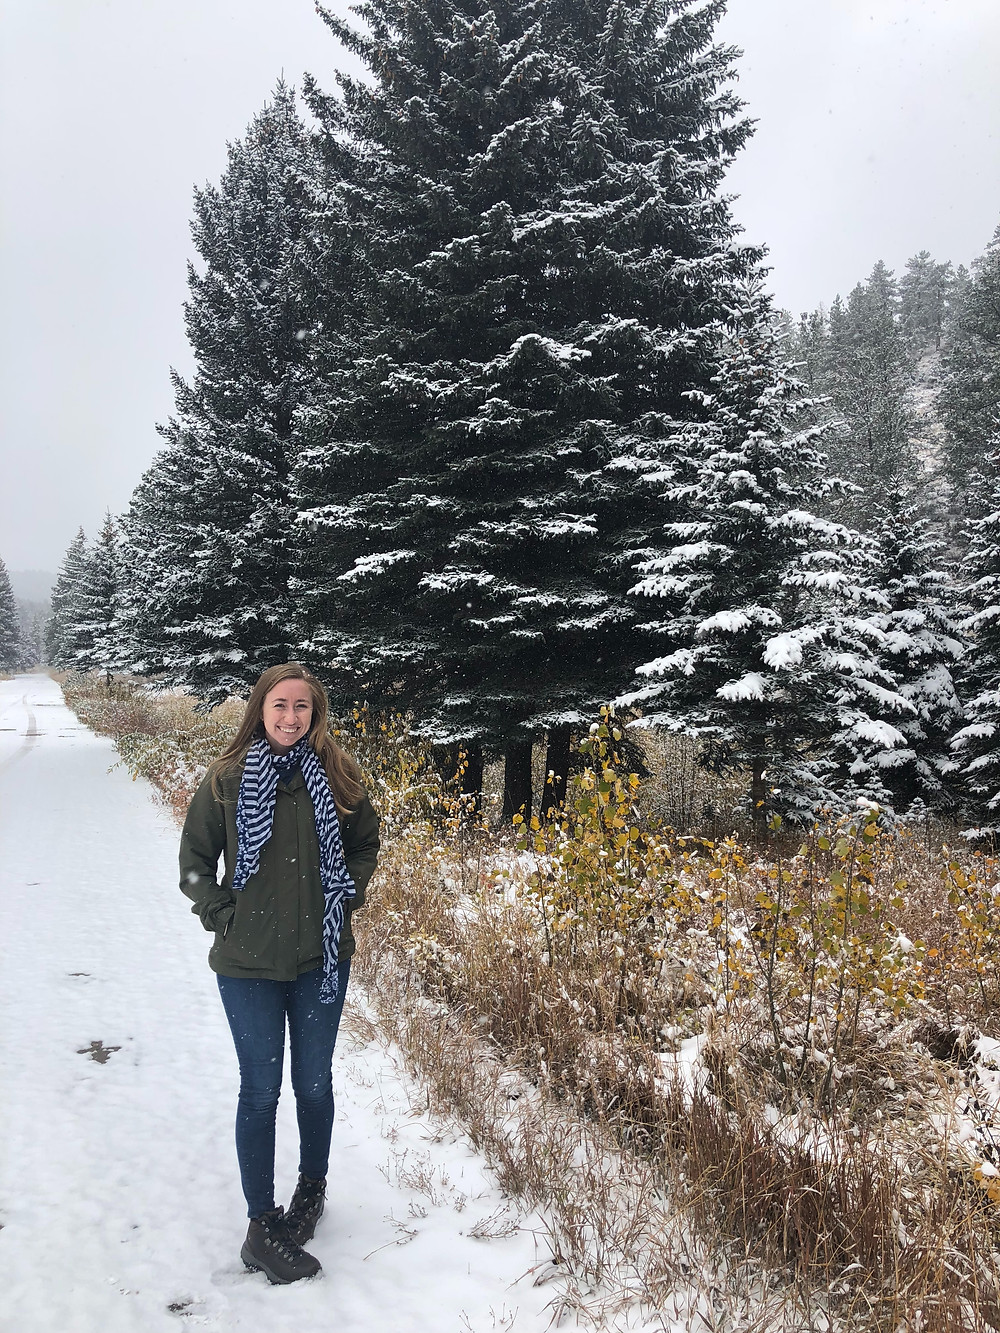 Young lady standing on snow covered trail with pine trees behind her.